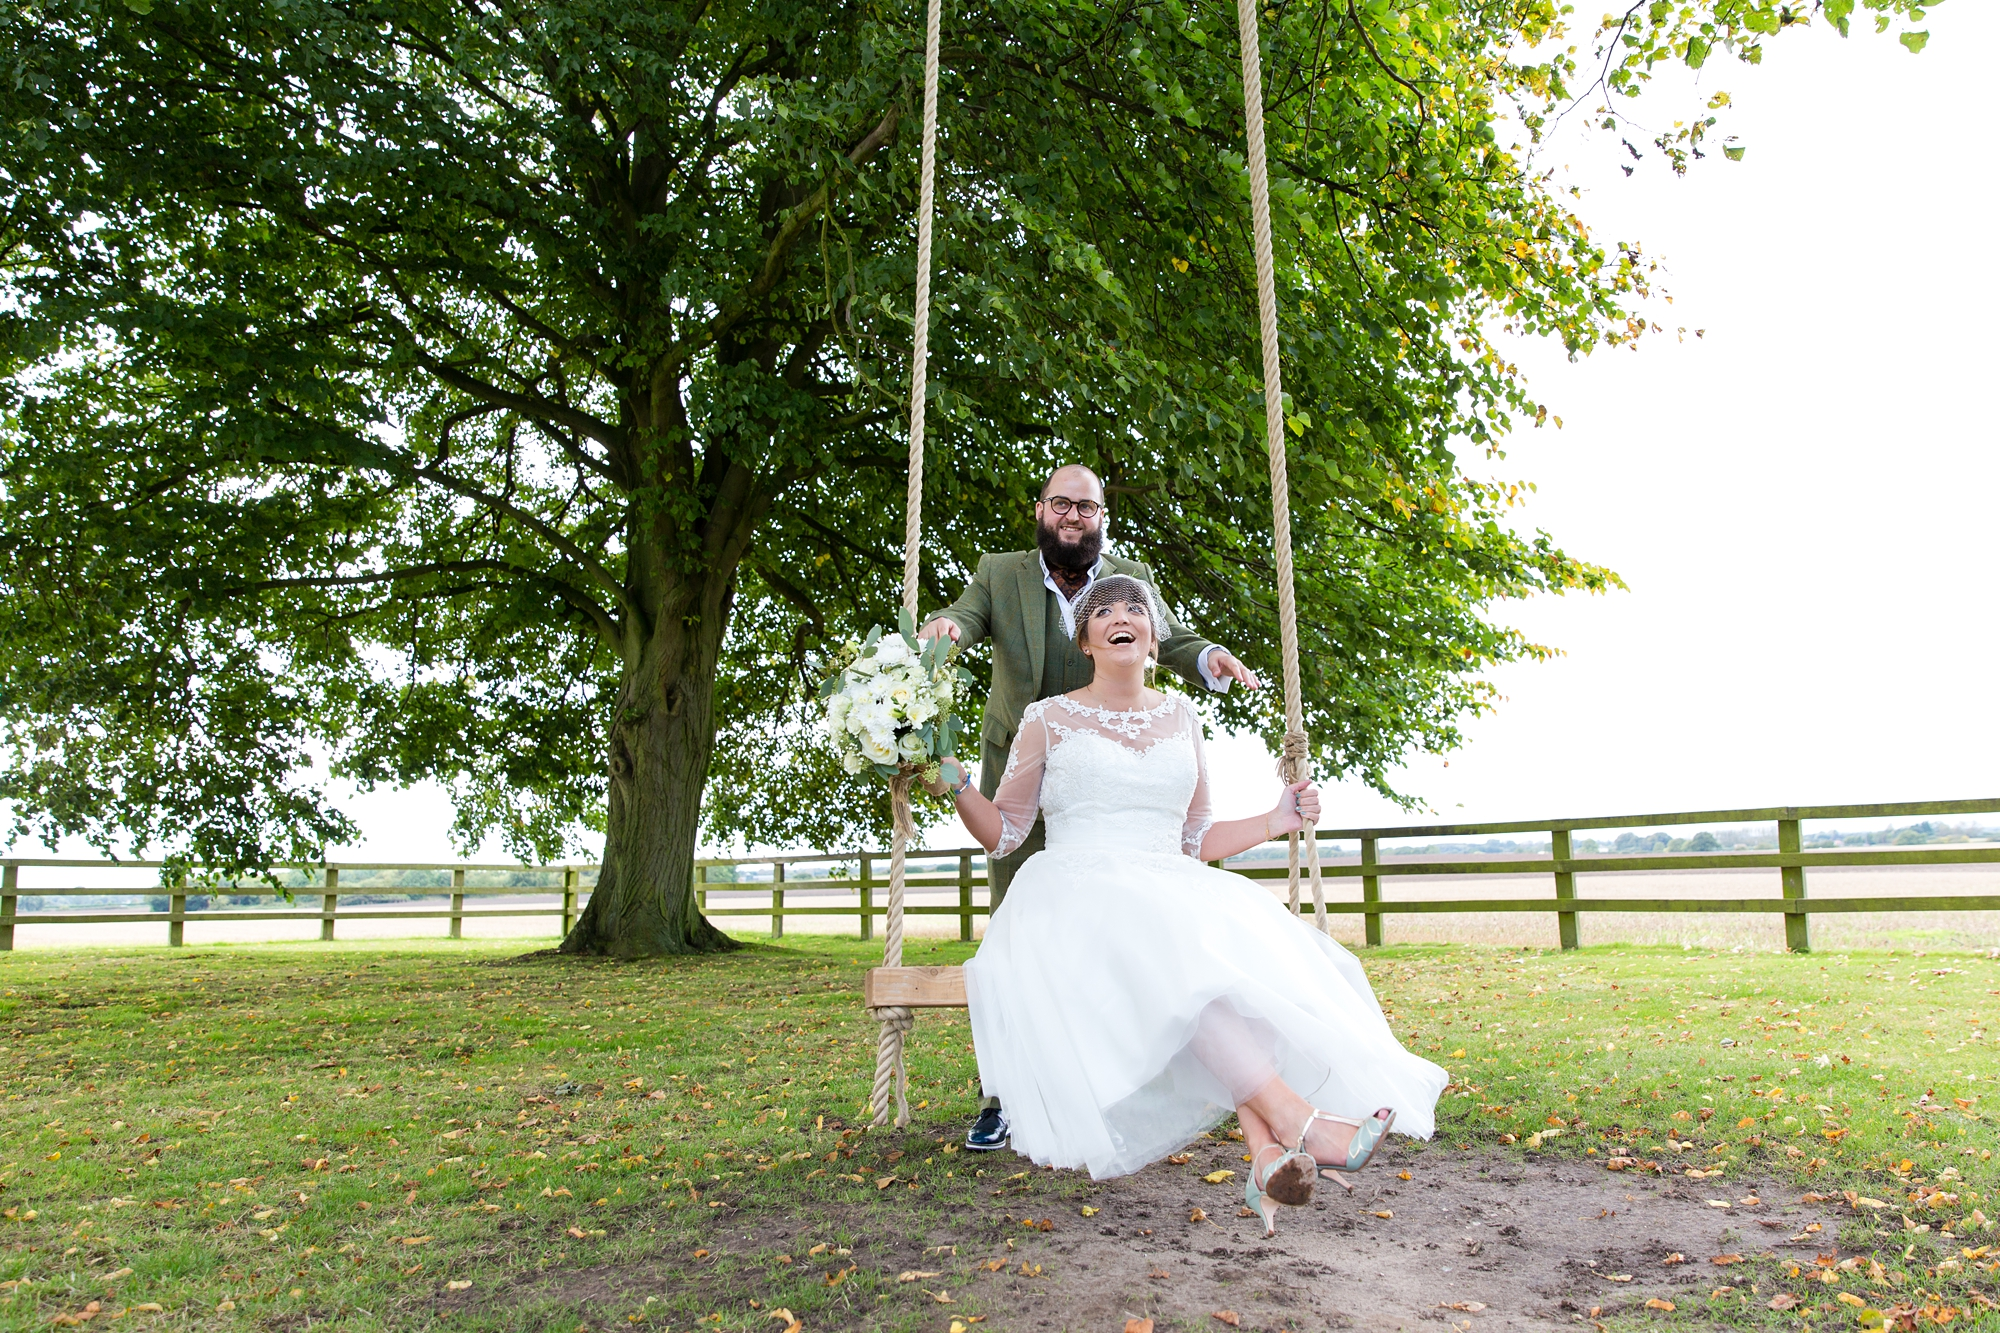 York Wedding Photography at Barmbyfield Barns groom pushes bride on swing